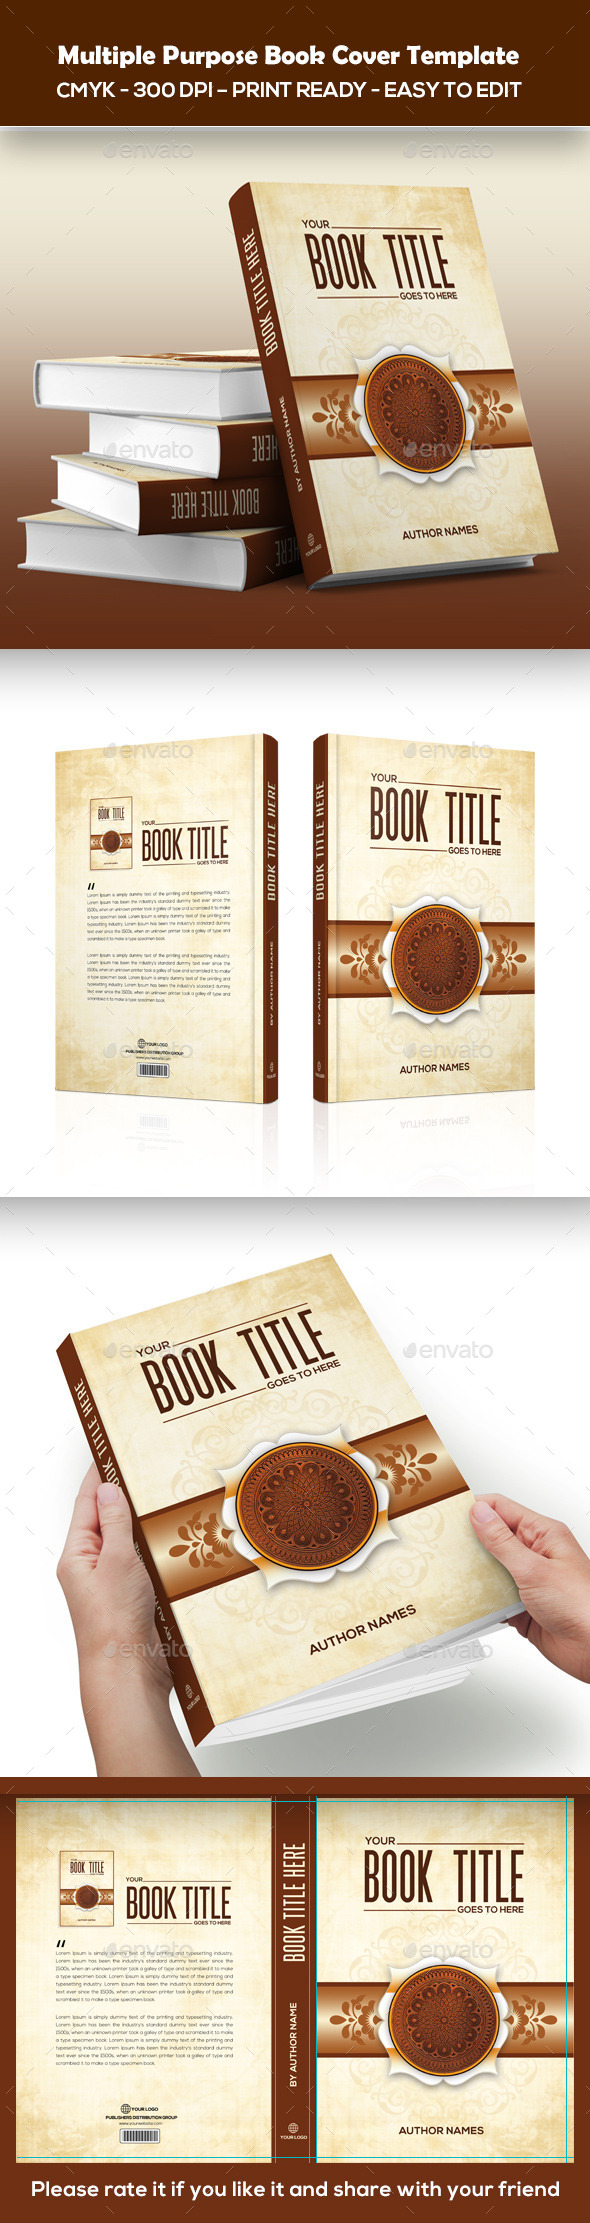 GraphicRiver Multiple Purpose Book Cover Template 11876277